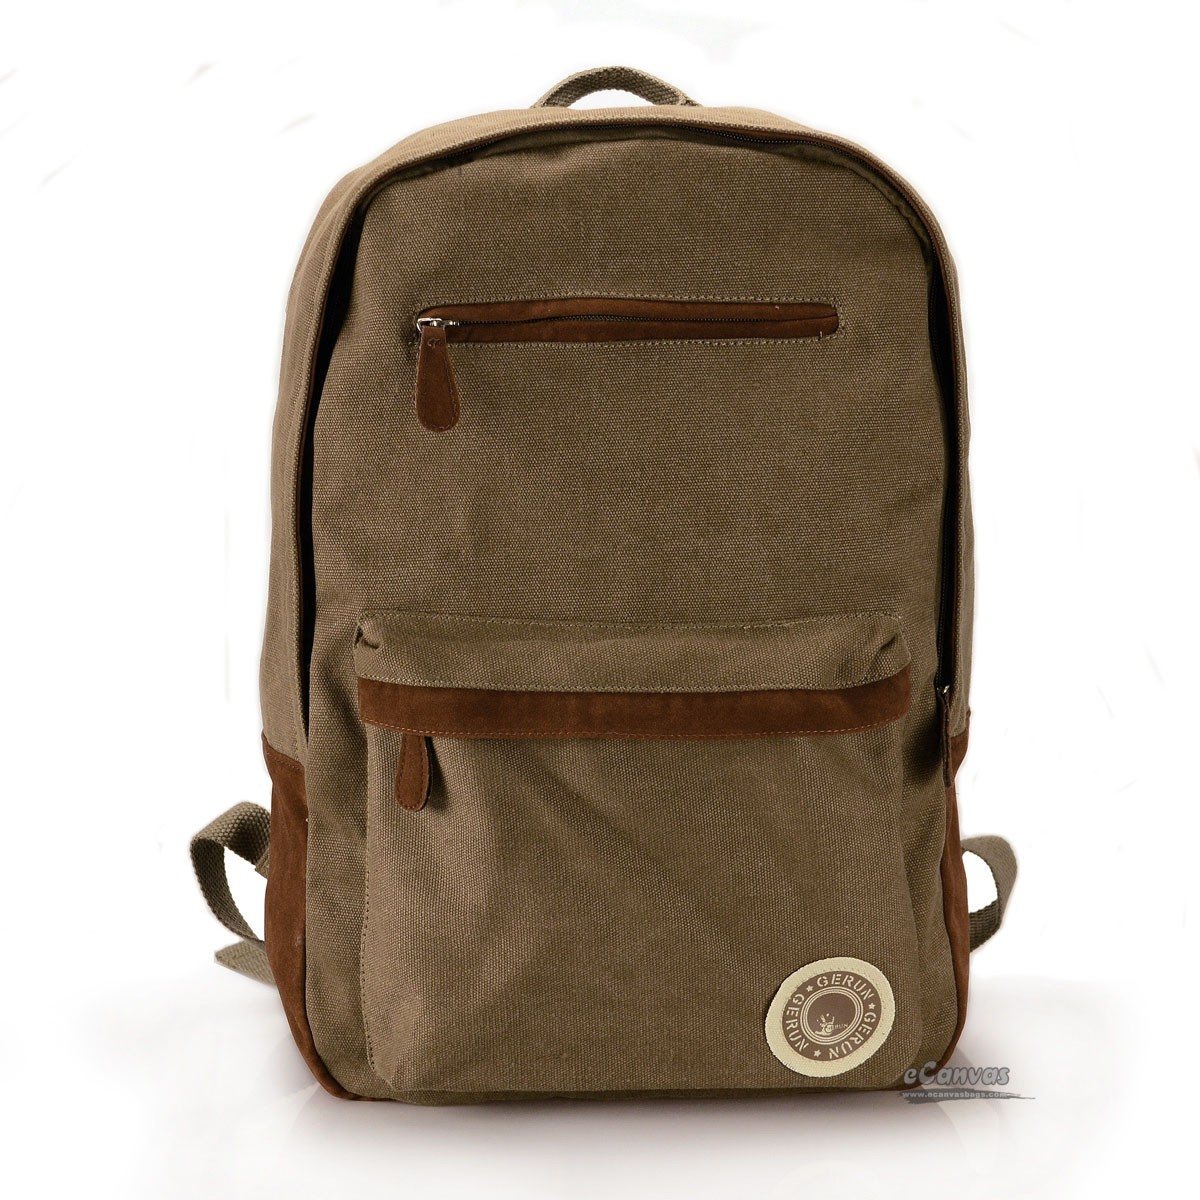 Traveling backpack, canvas coffee school book bag - E-CanvasBags